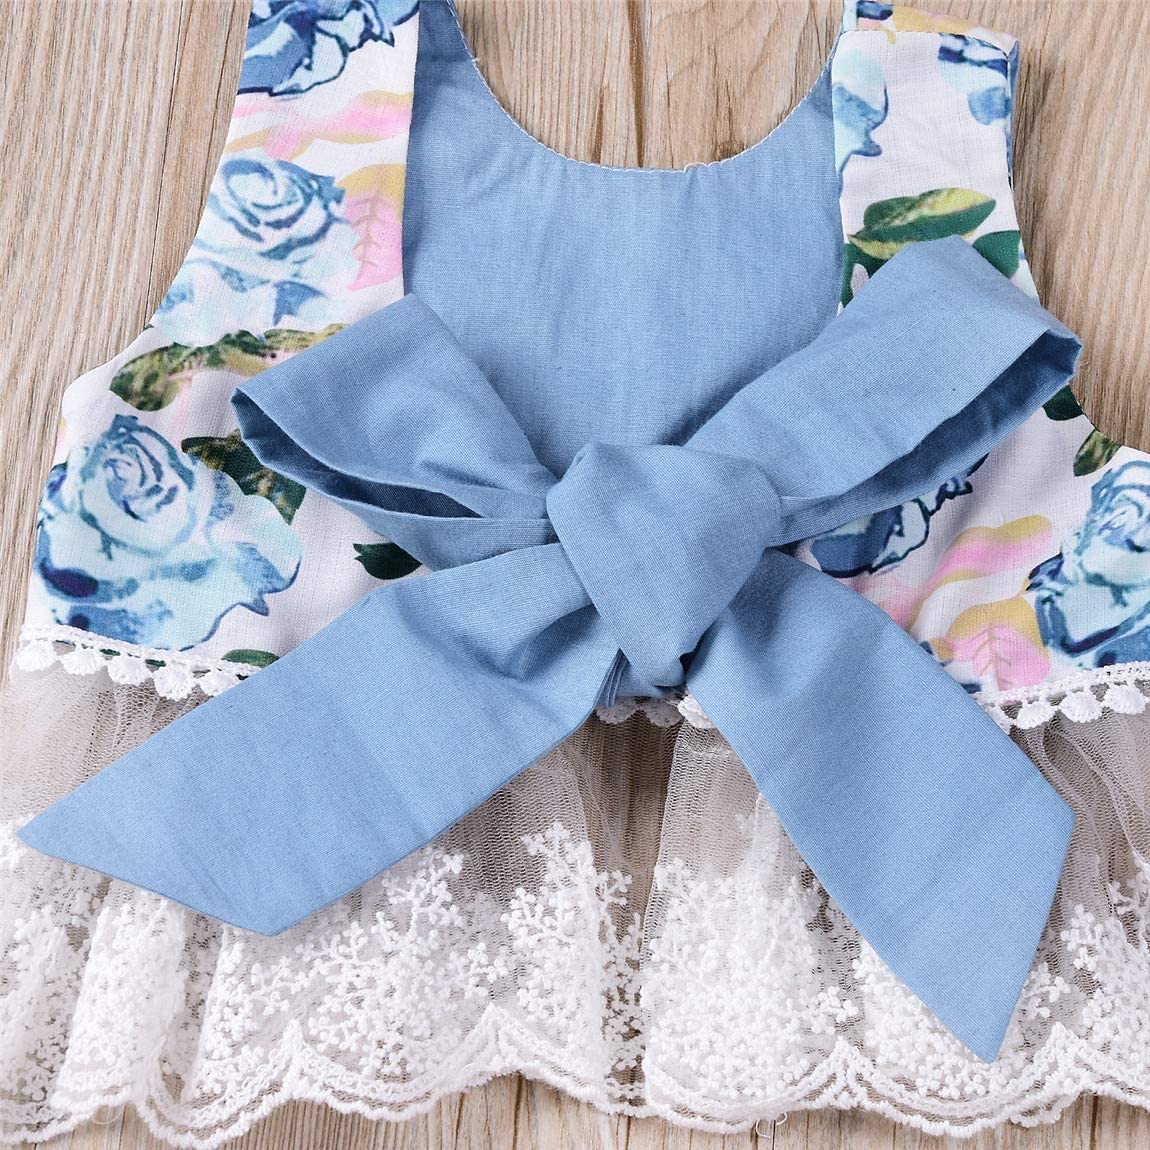 Rose Outfits for Baby Girl Newborn Lace and Floral Top+Pink Shorts Summer Sets